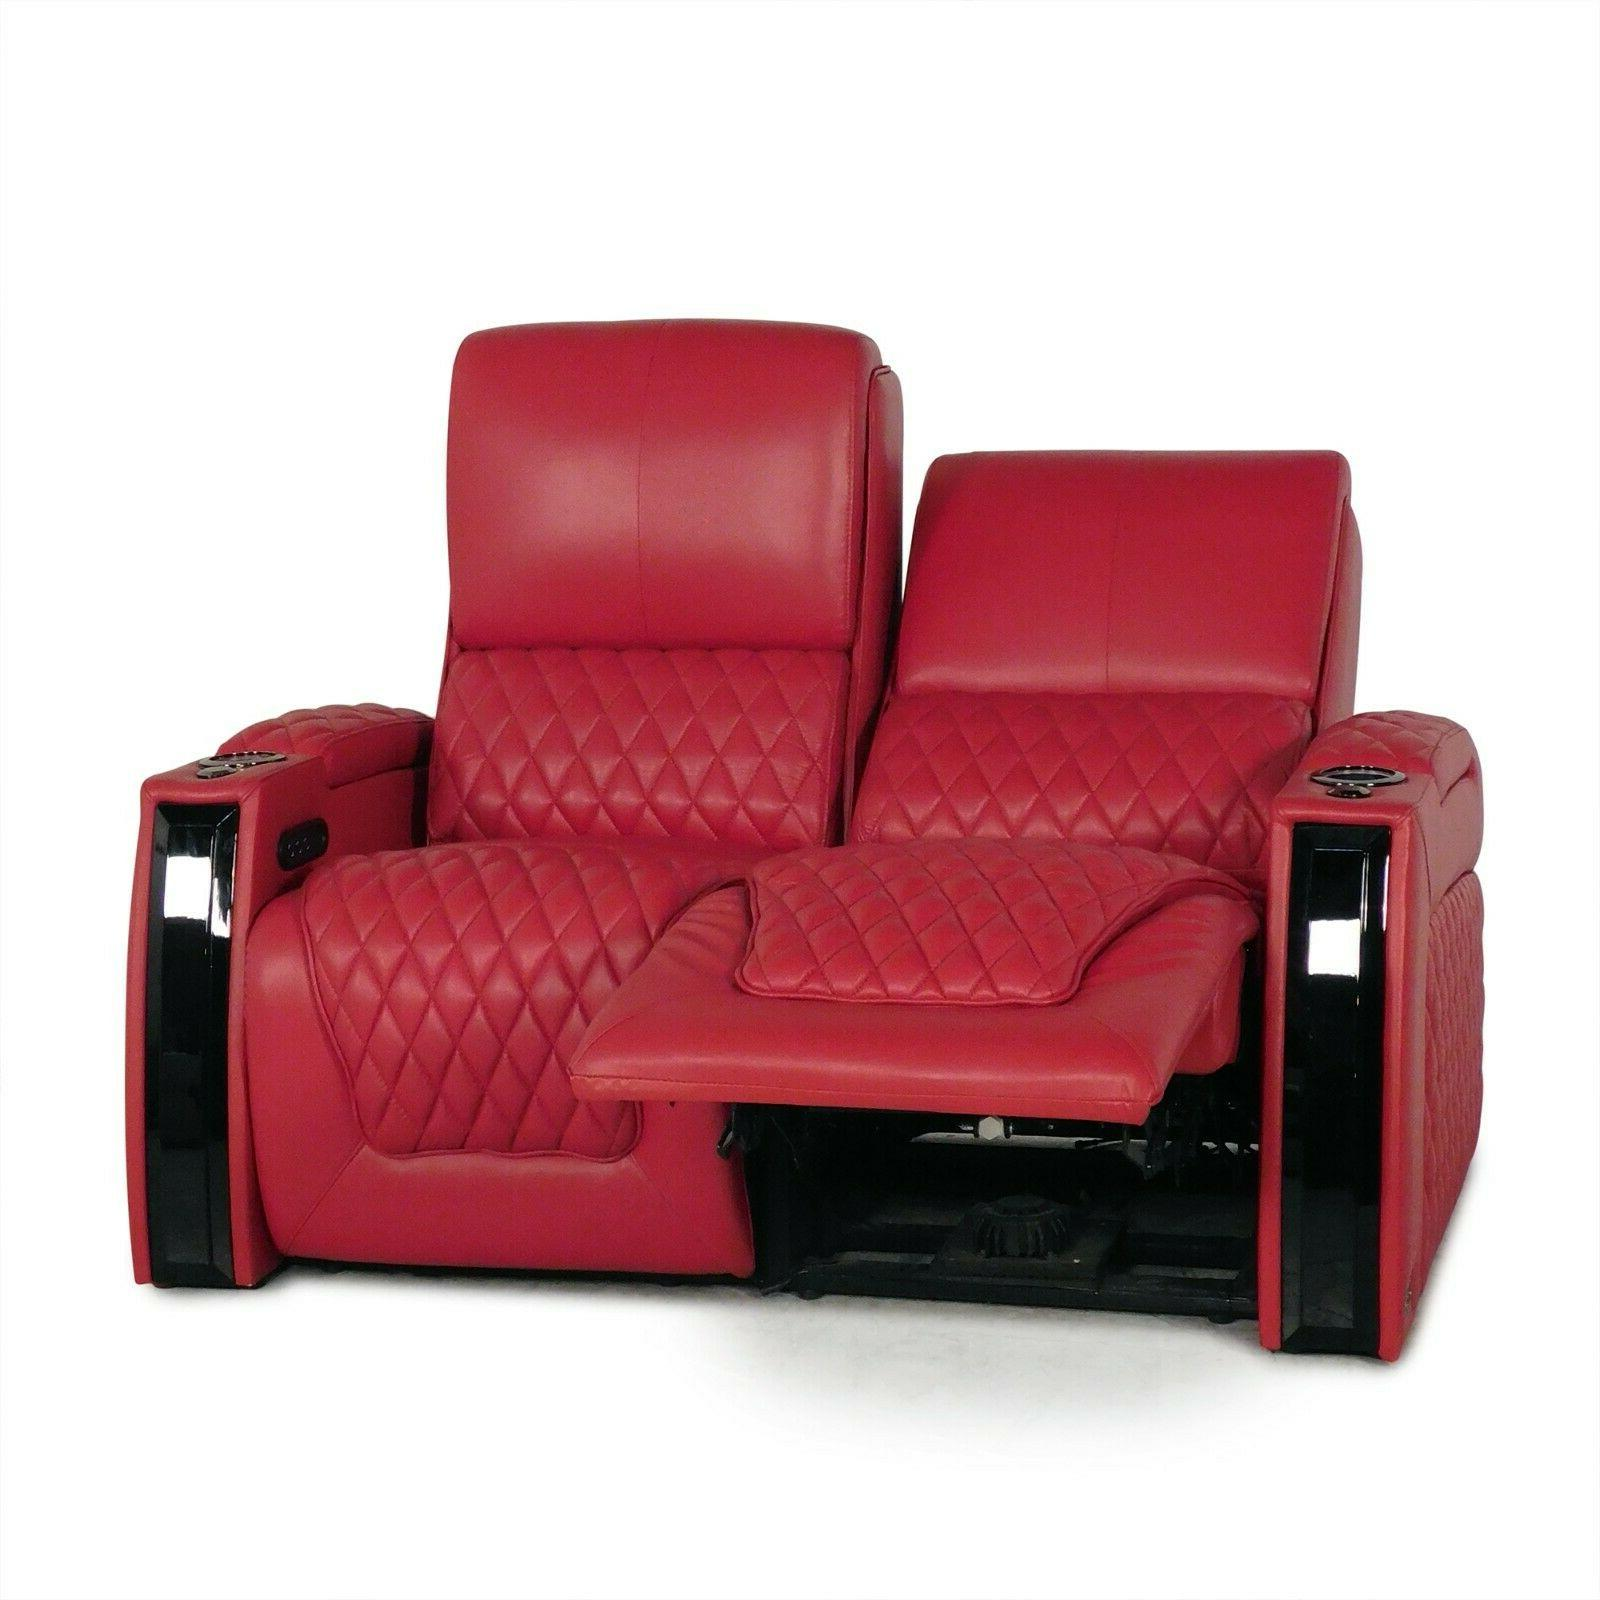 Seatcraft Red Leather Home Theater Loveseat Power Recliners